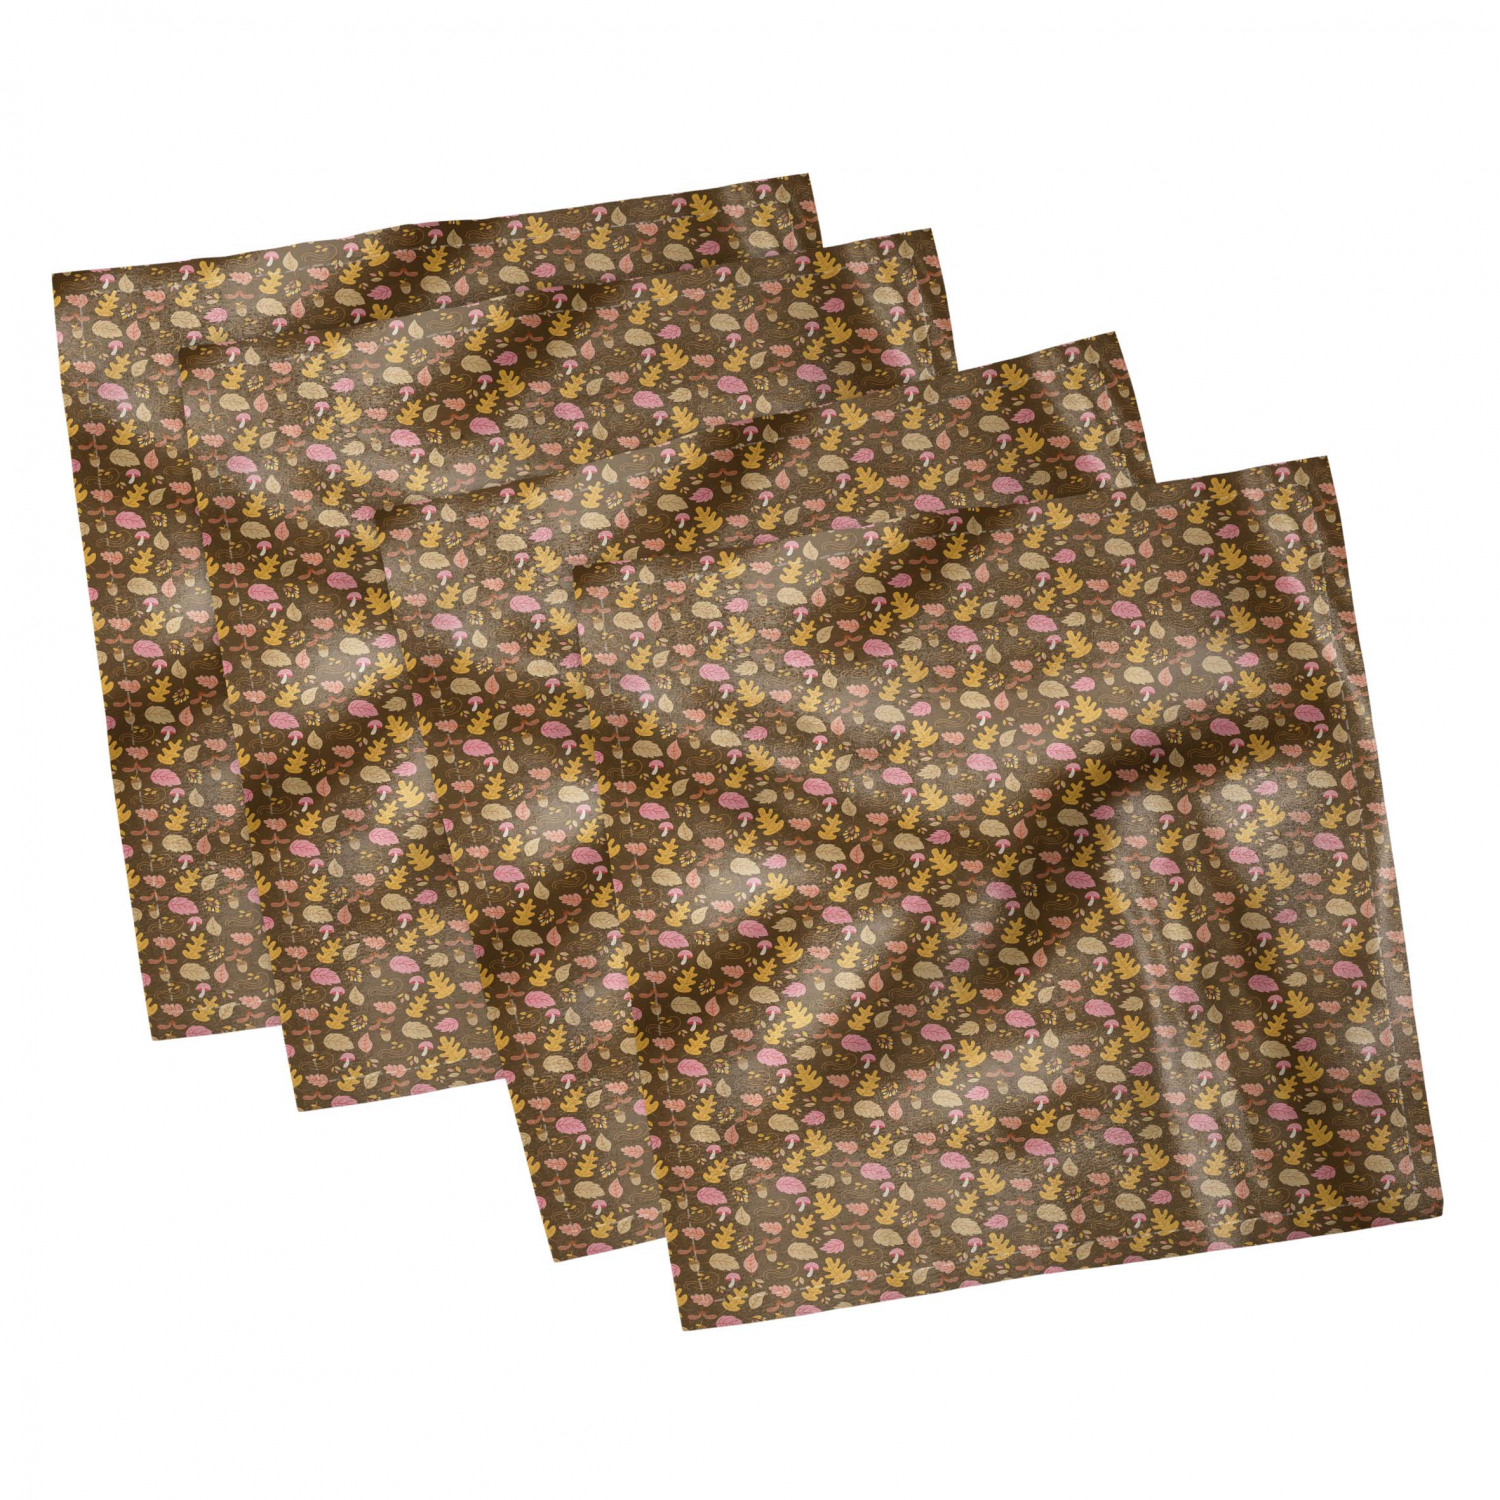 thumbnail 93 - Ambesonne-Autumn-Fall-Decorative-Satin-Napkins-Set-of-4-Party-Dinner-Fabric